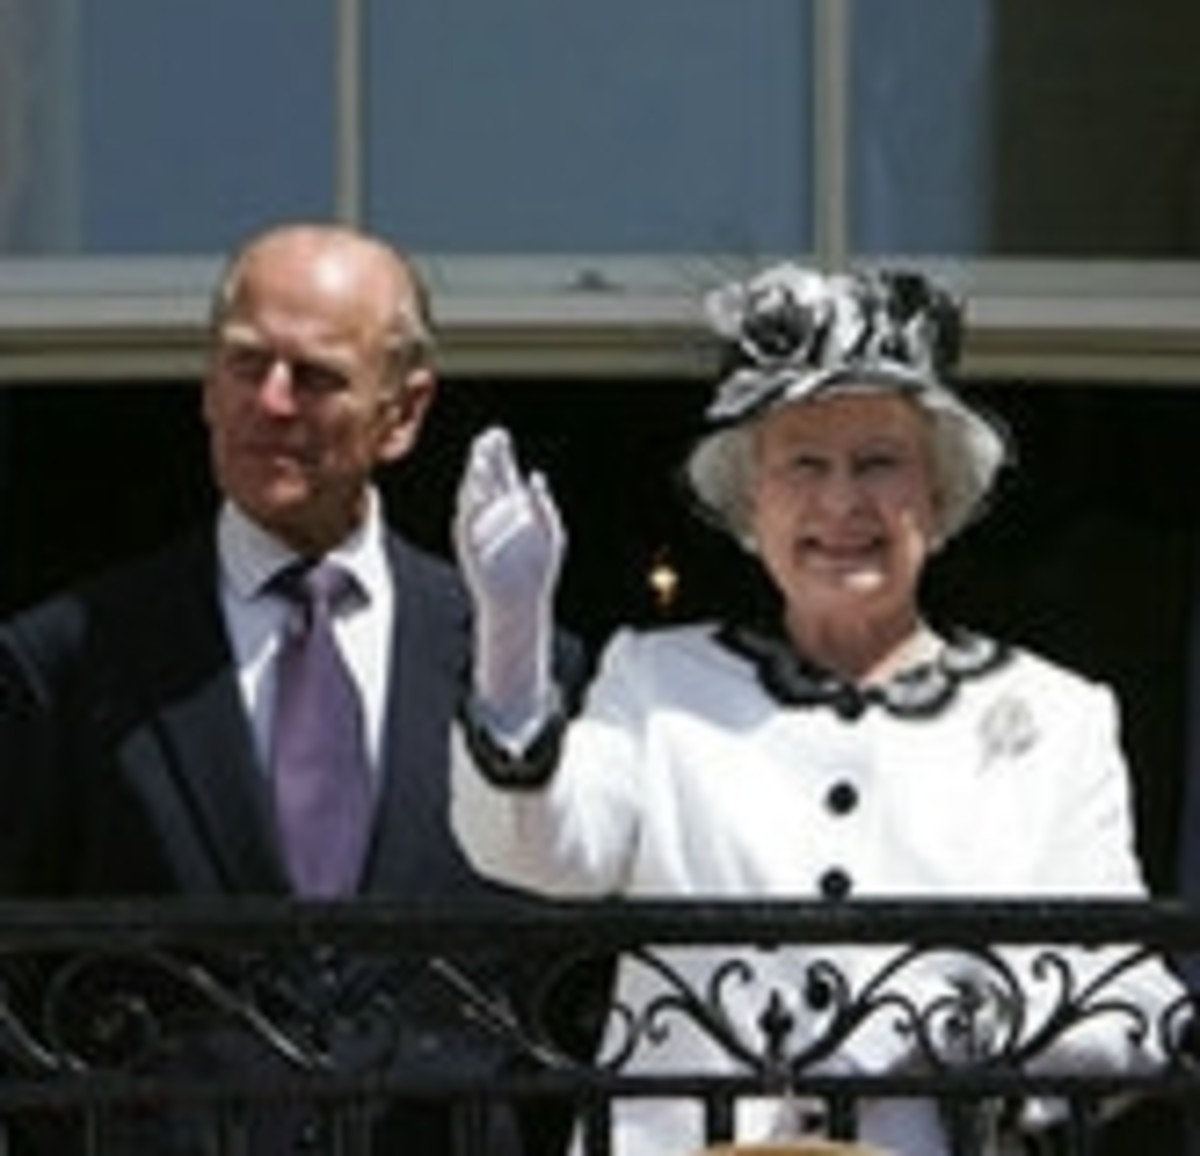 The Queen and Prince Phillip taken in 2002